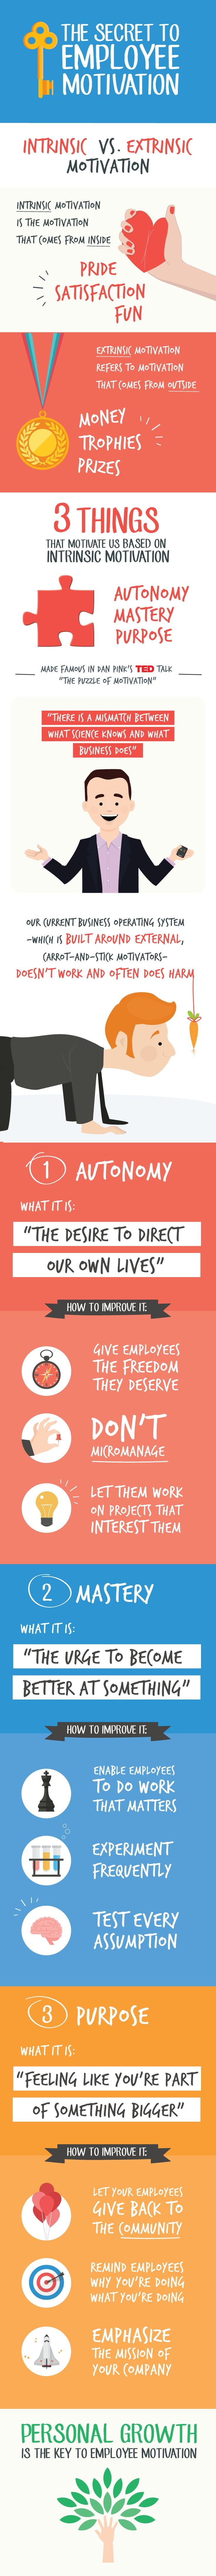 These Are The Best Ways To Inspire Employee Motivation